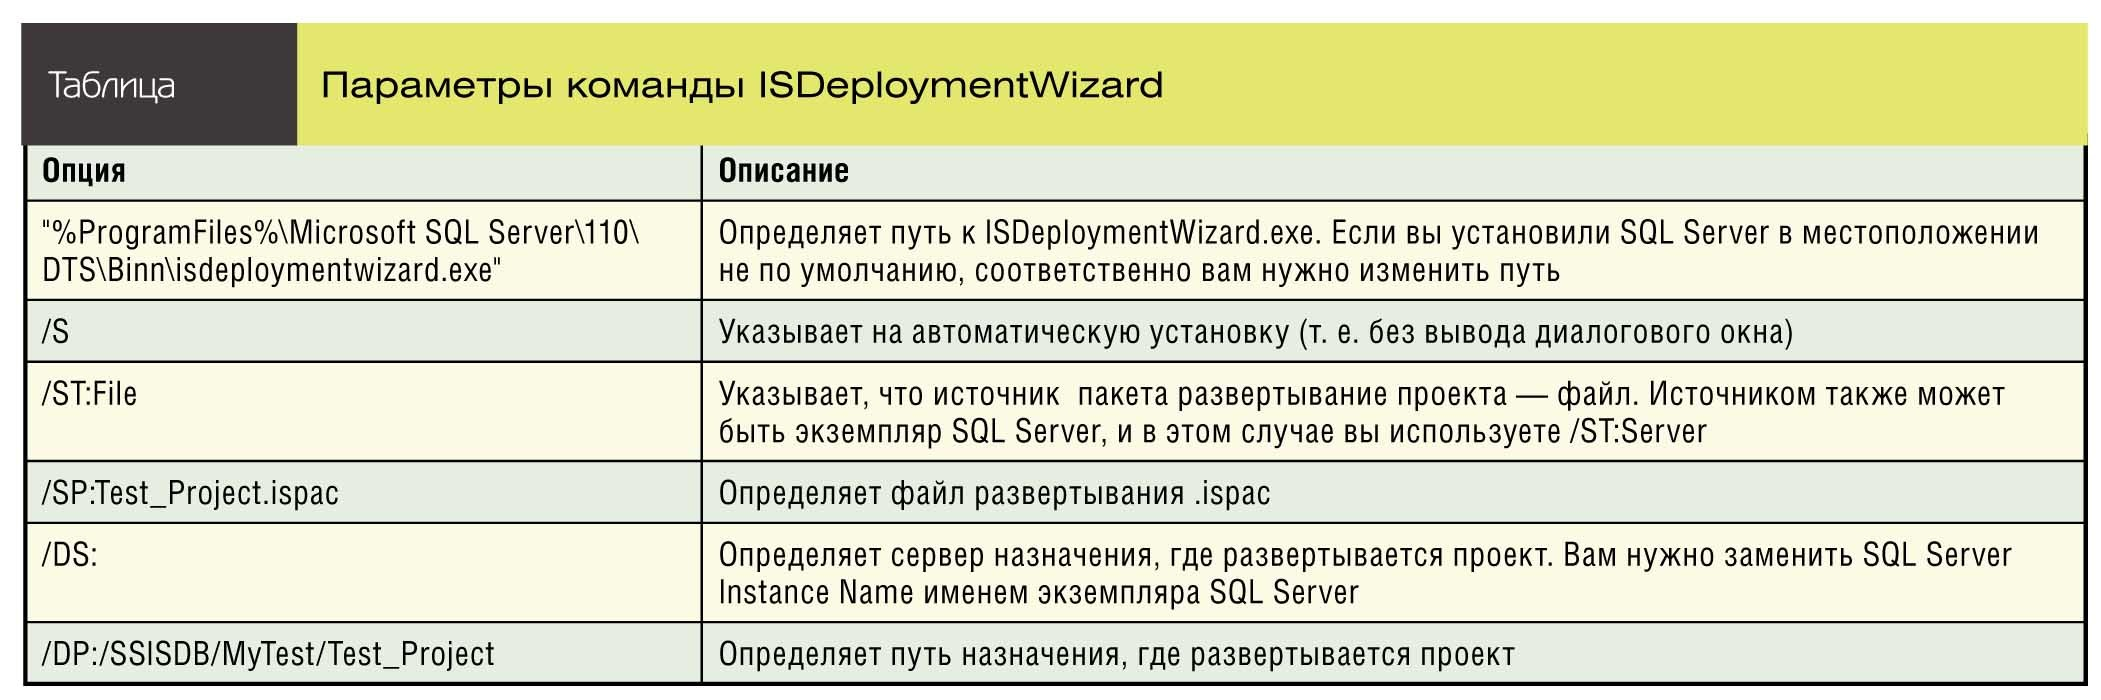 Параметры команды ISDeploymentWizard